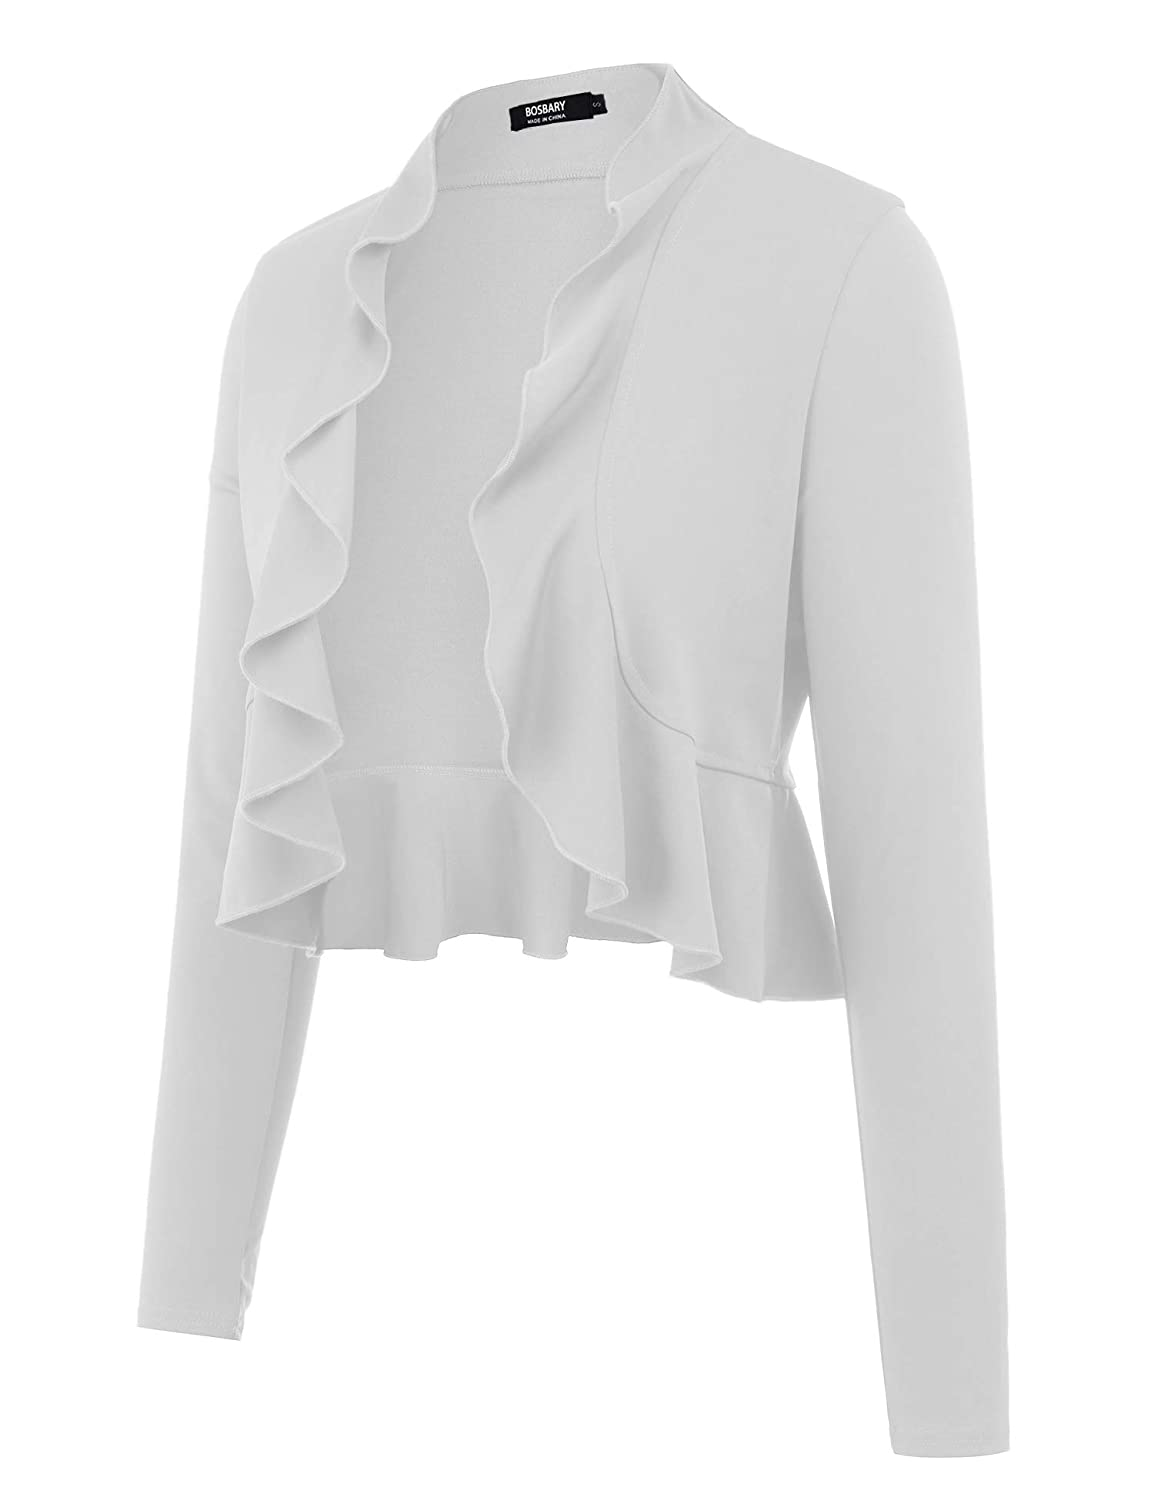 White bosbary Women's Open Front Cropped Cardigan Long Sleeve Casual Shrugs Jacket Draped Ruffles Lightweight Sweaters